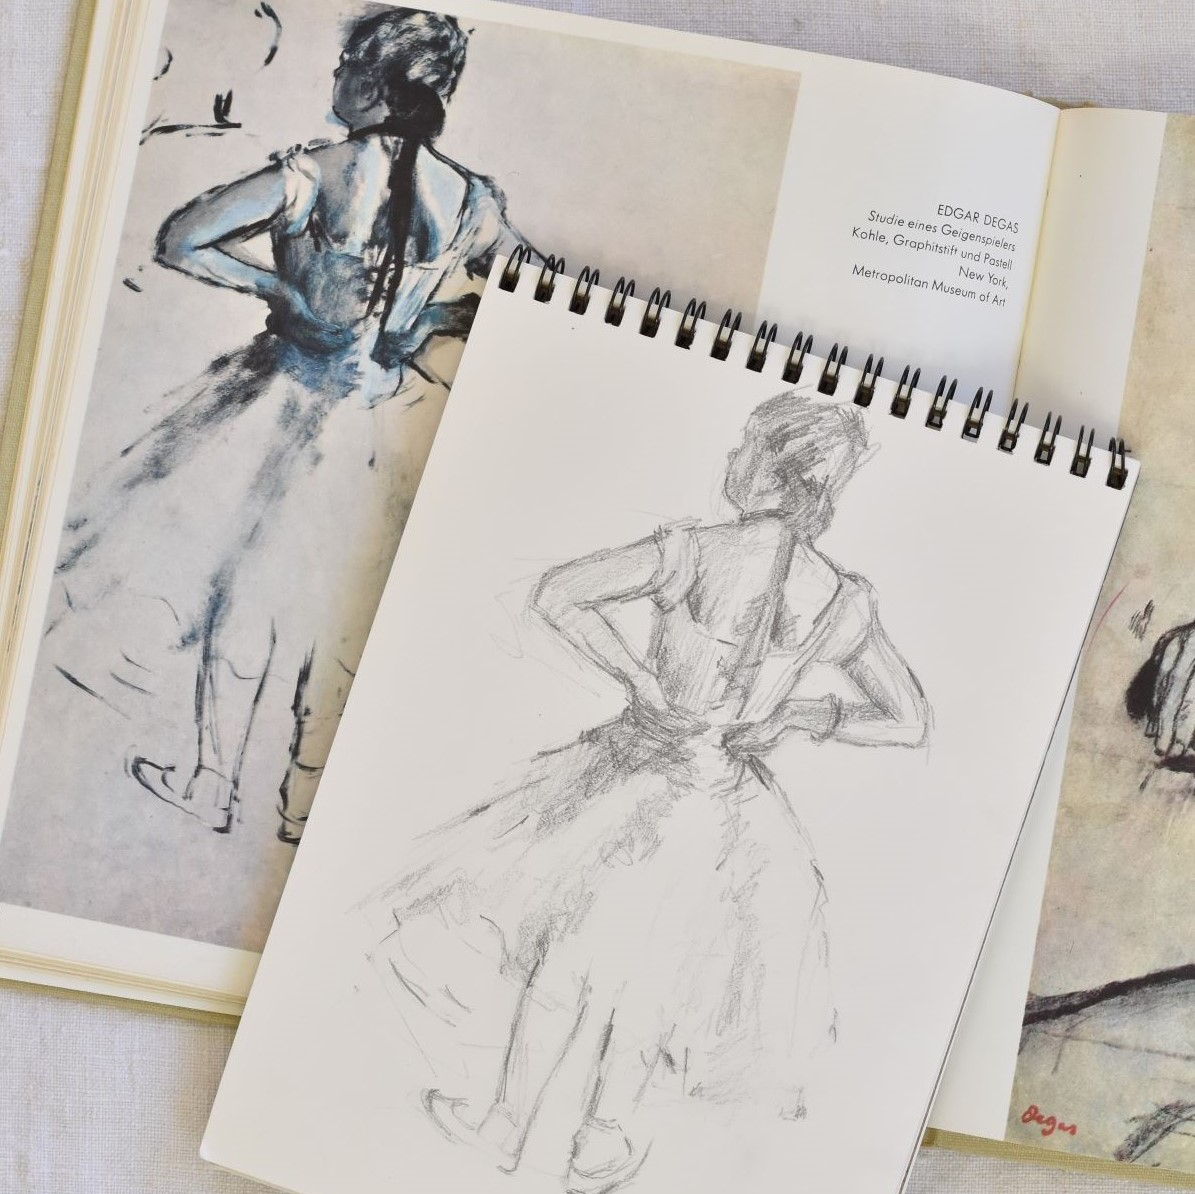 Degas drawing in pencil